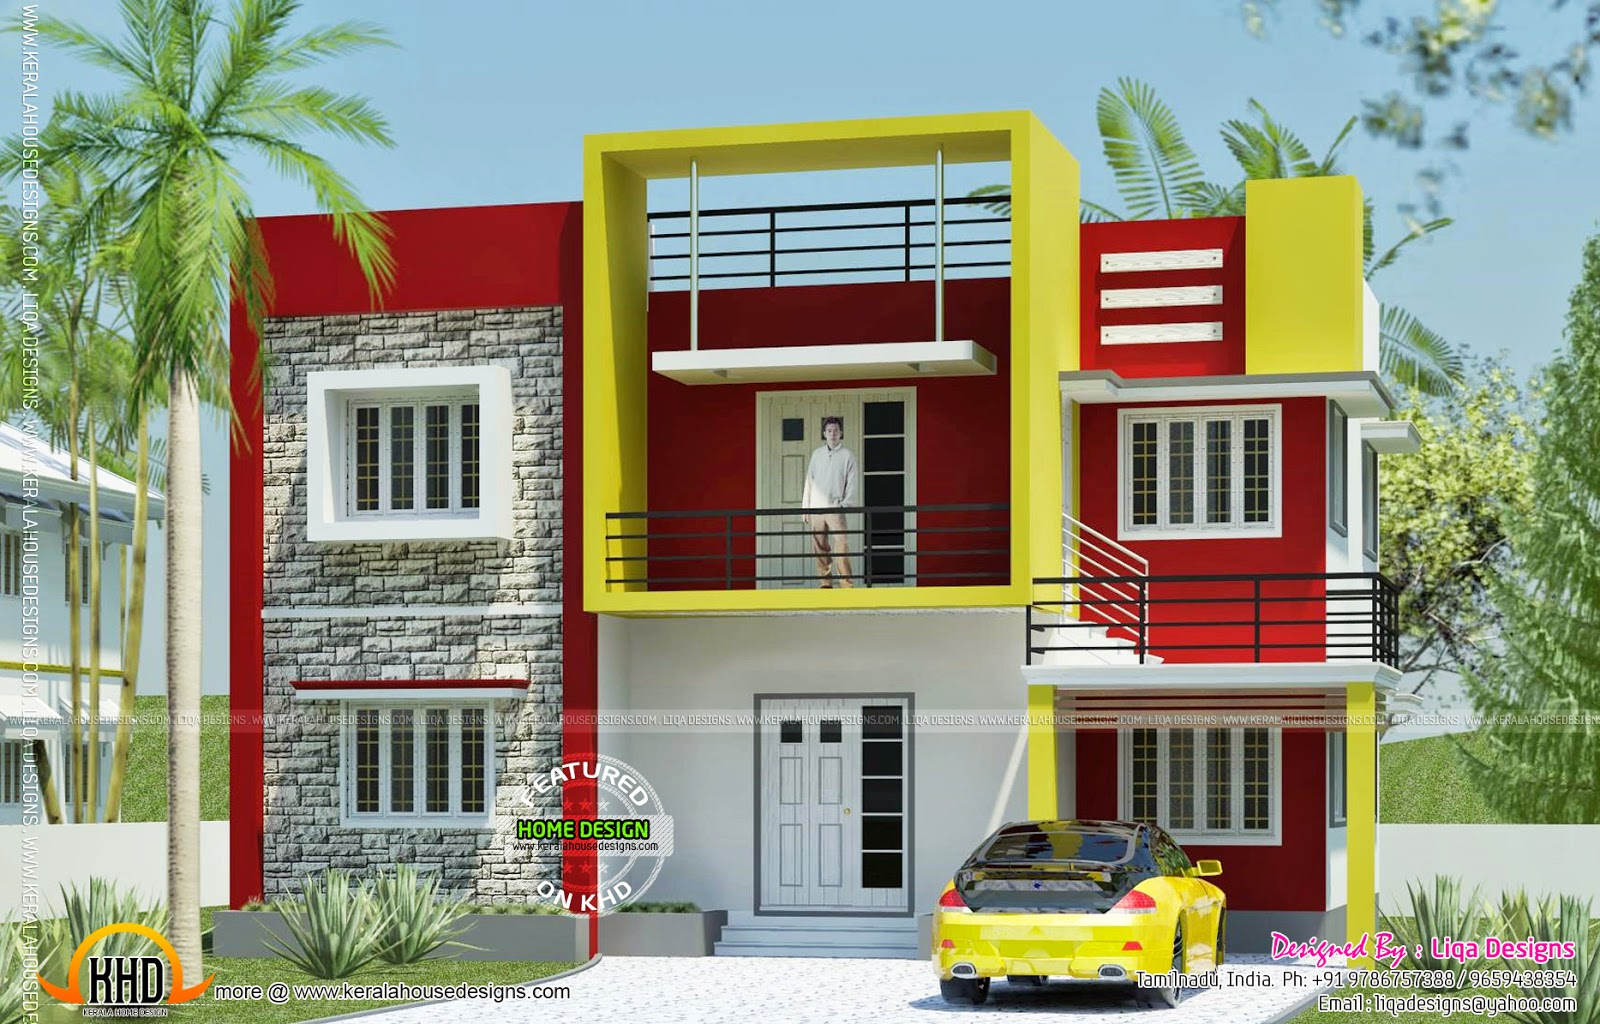 Contemporary house in tamilnadu kerala home design and for Home designs in tamilnadu